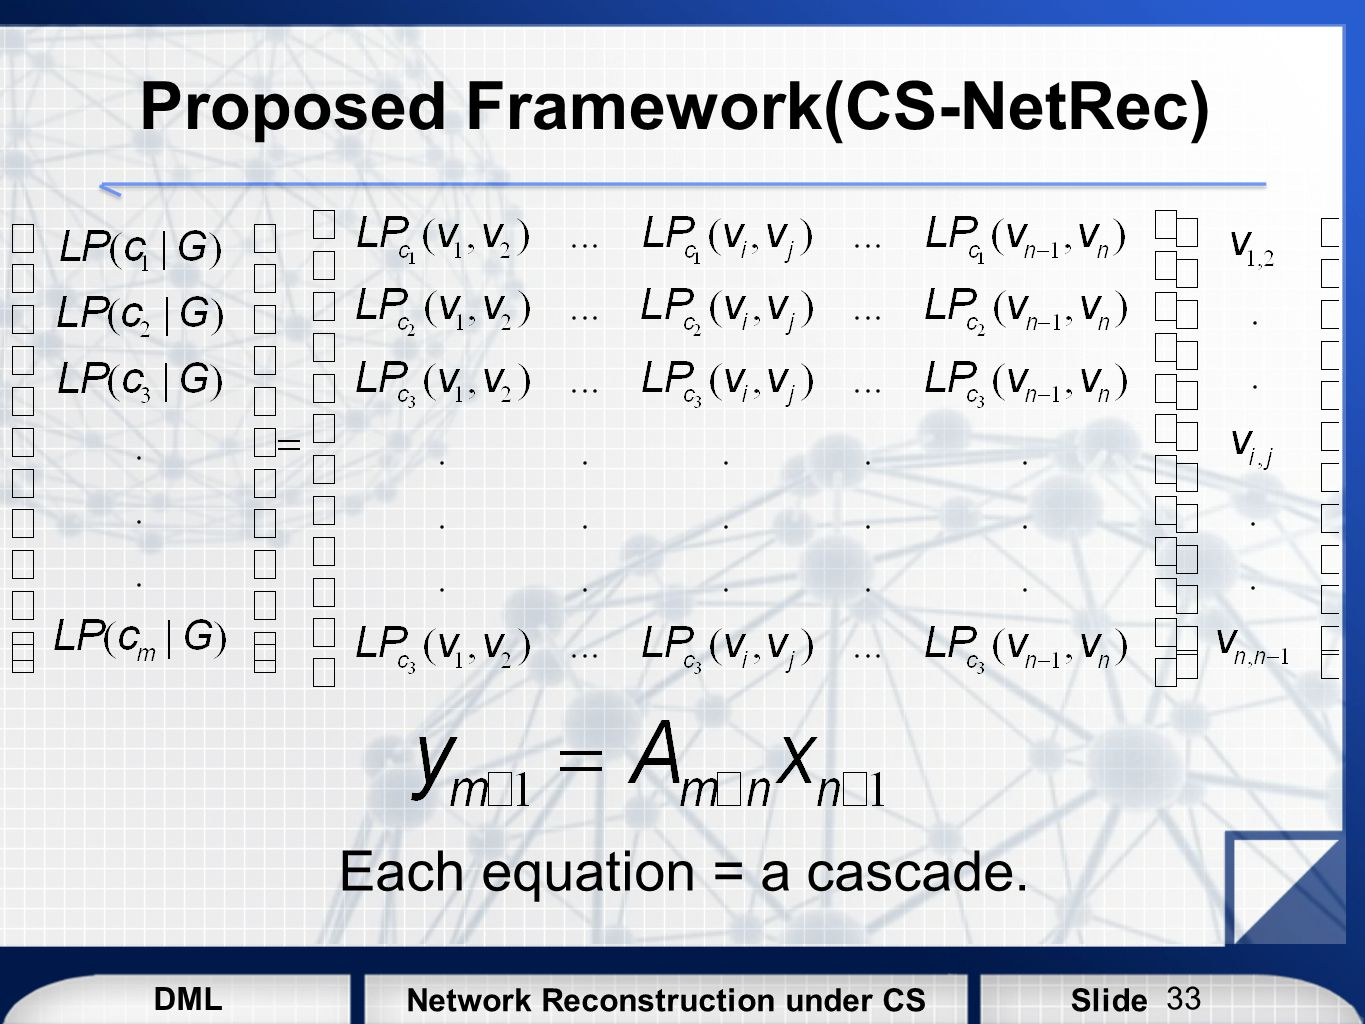 Proposed Framework(CS-NetRec)